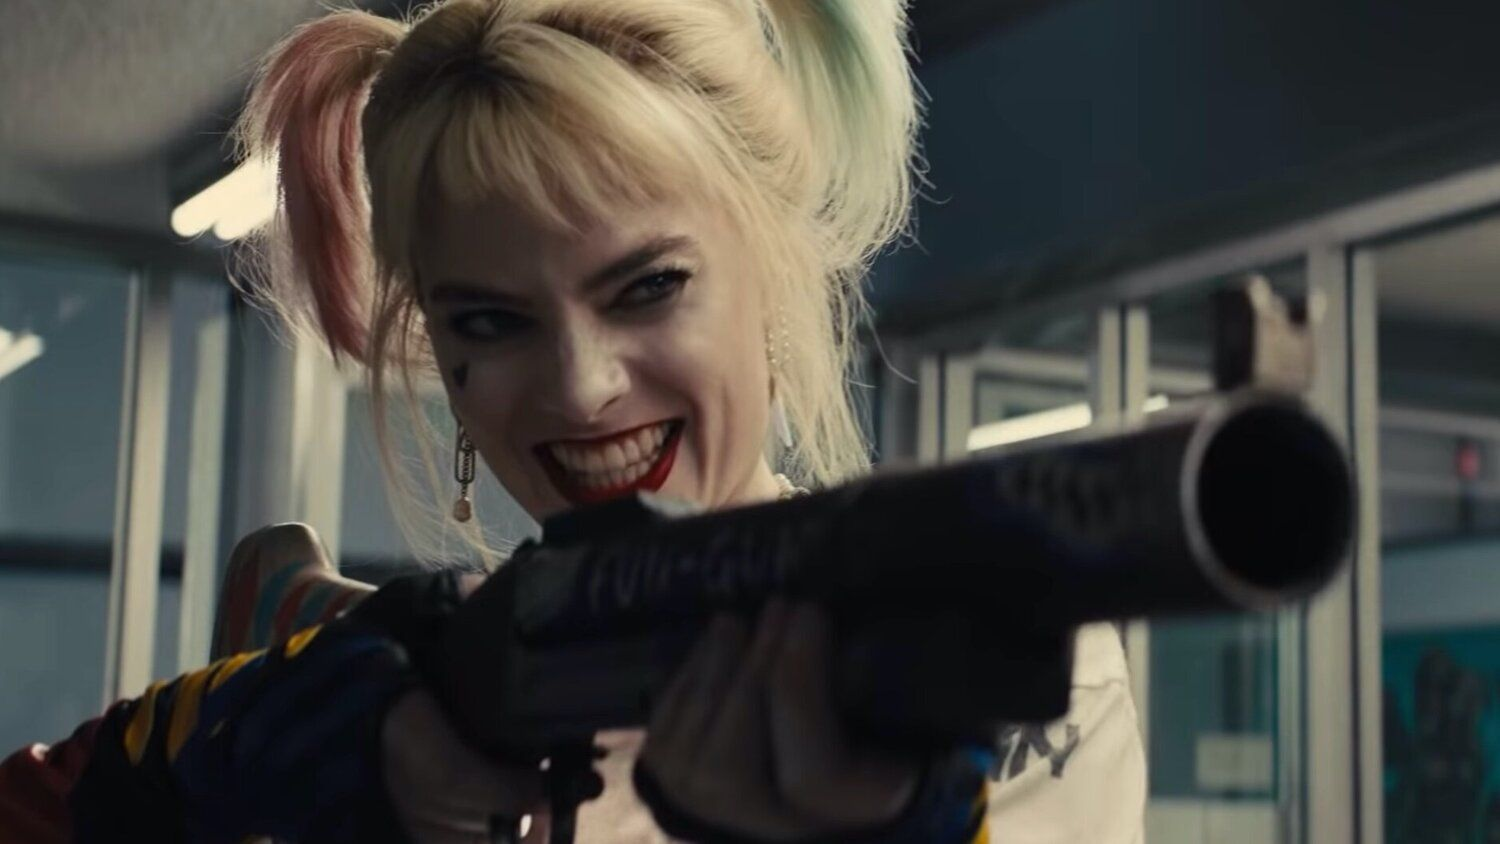 First Look at Margot Robbie as Harley Quinn in James Gunn's THE SUICIDE SQUAD